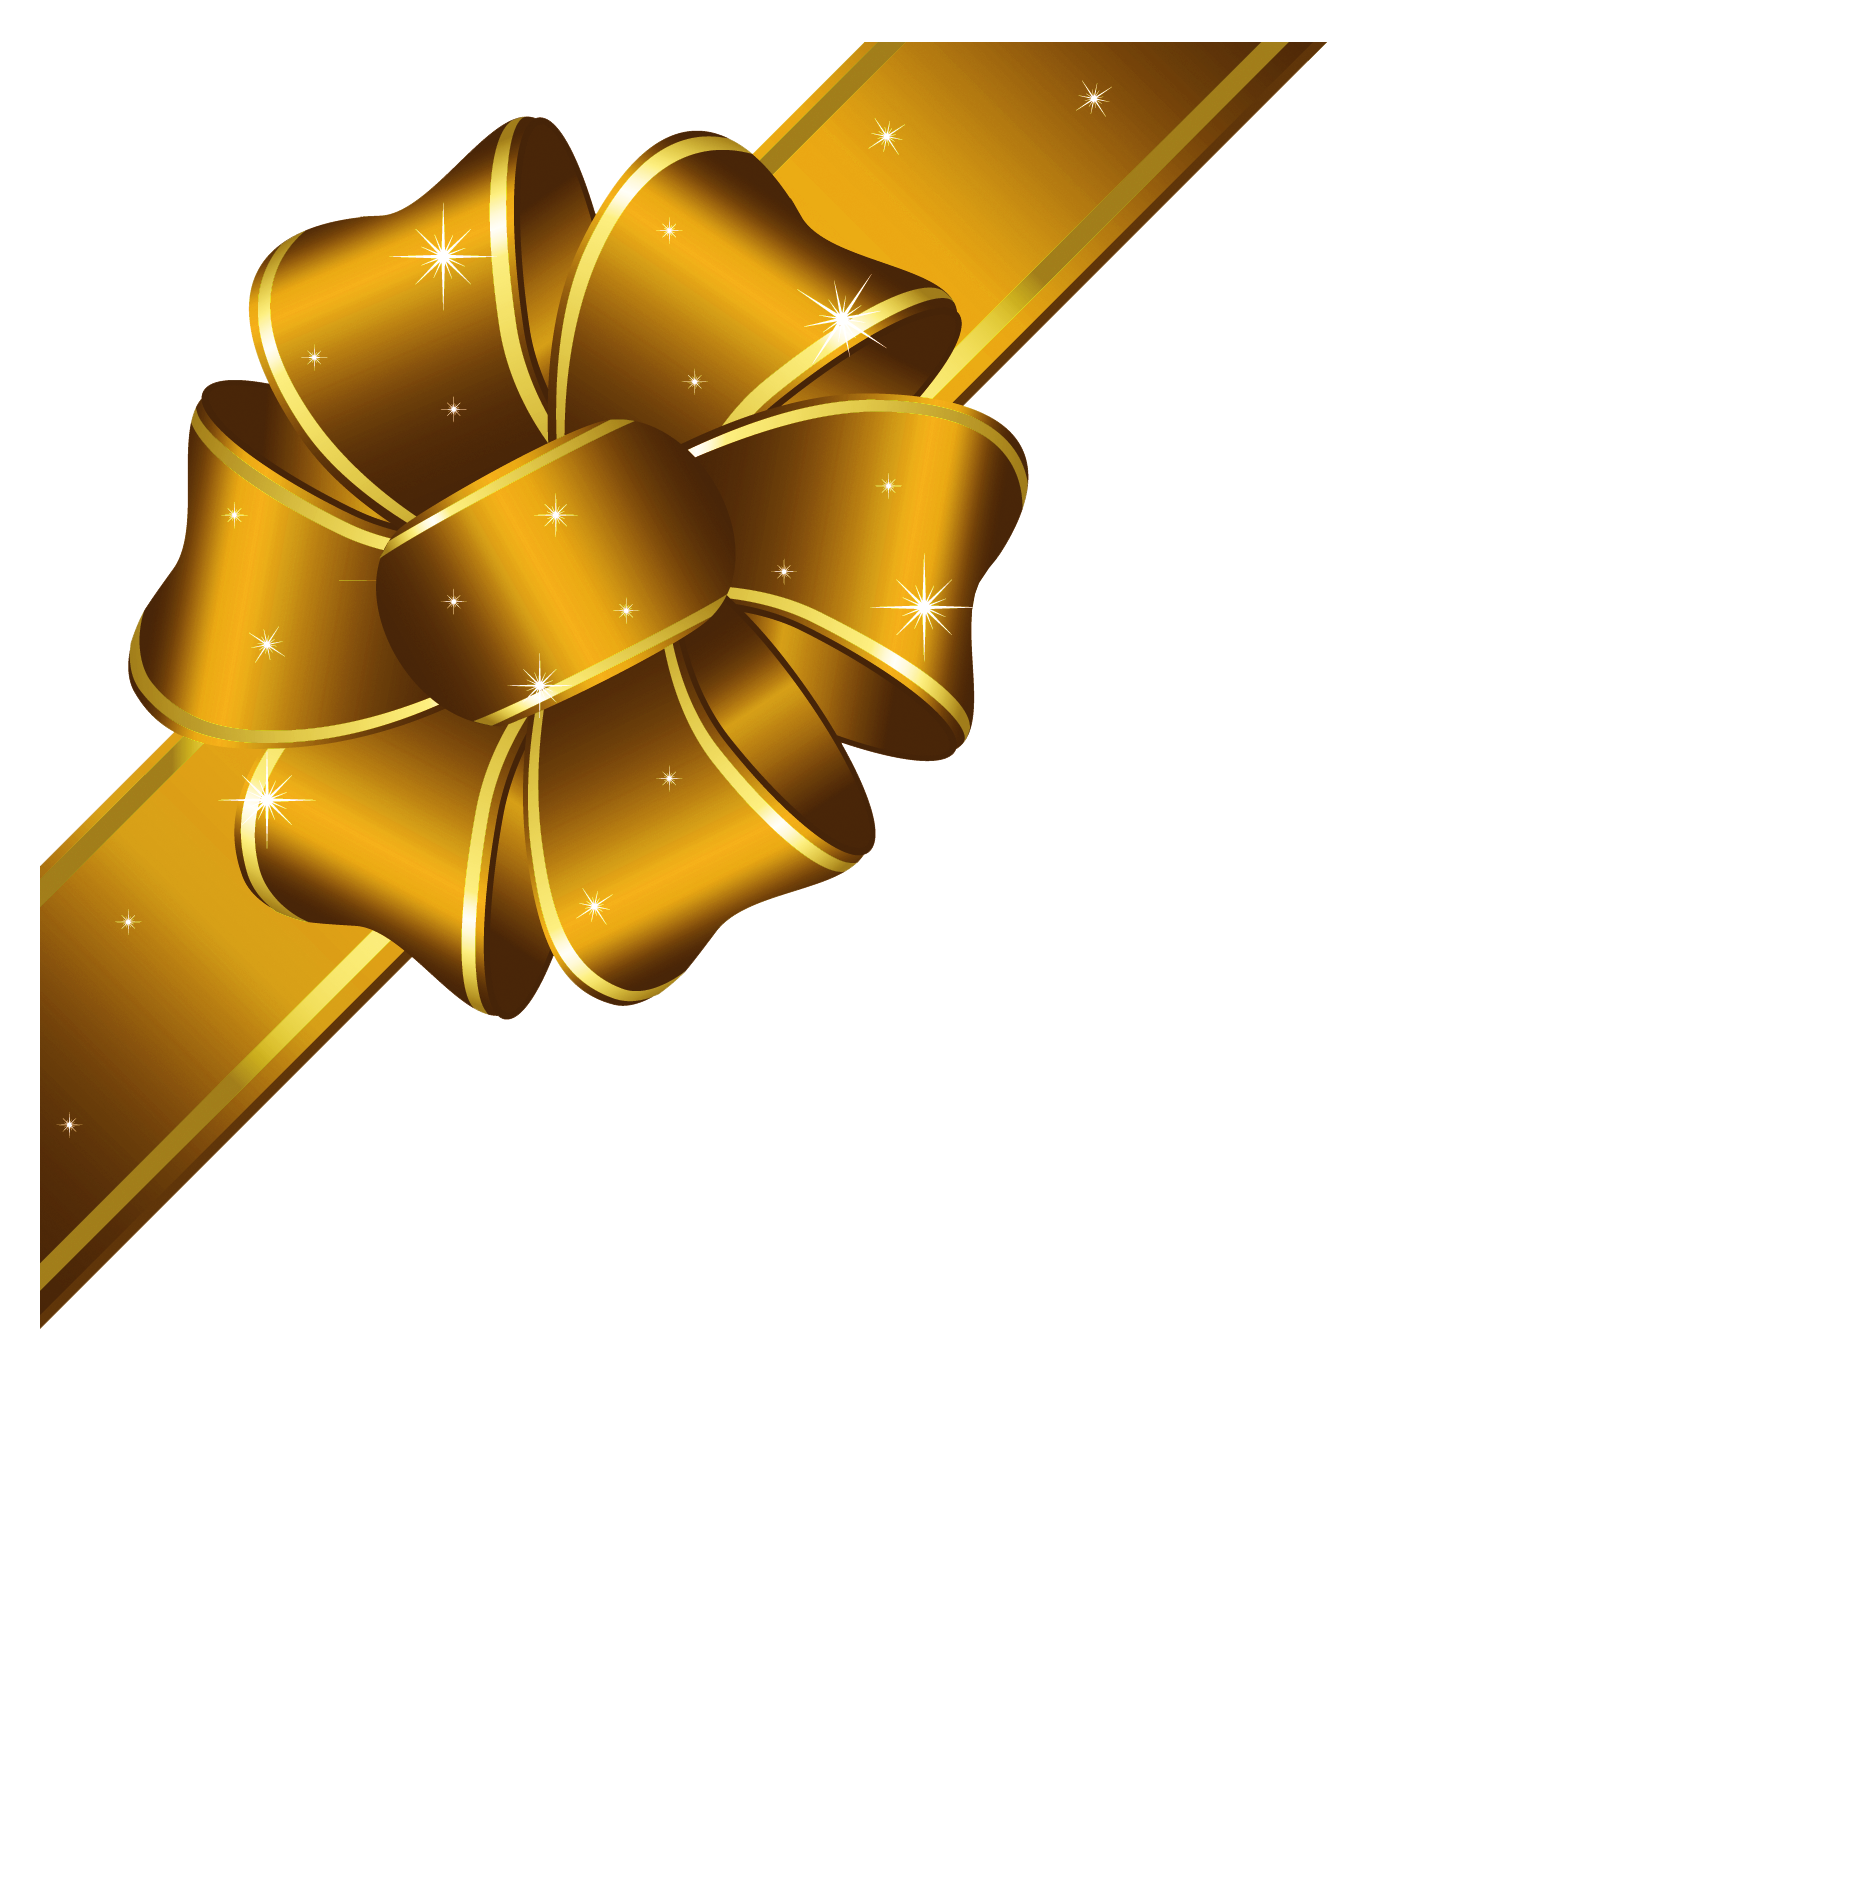 Gold Bow Clipart Clipart Kid Bow Clipart Gold Christmas Bows Clip Art